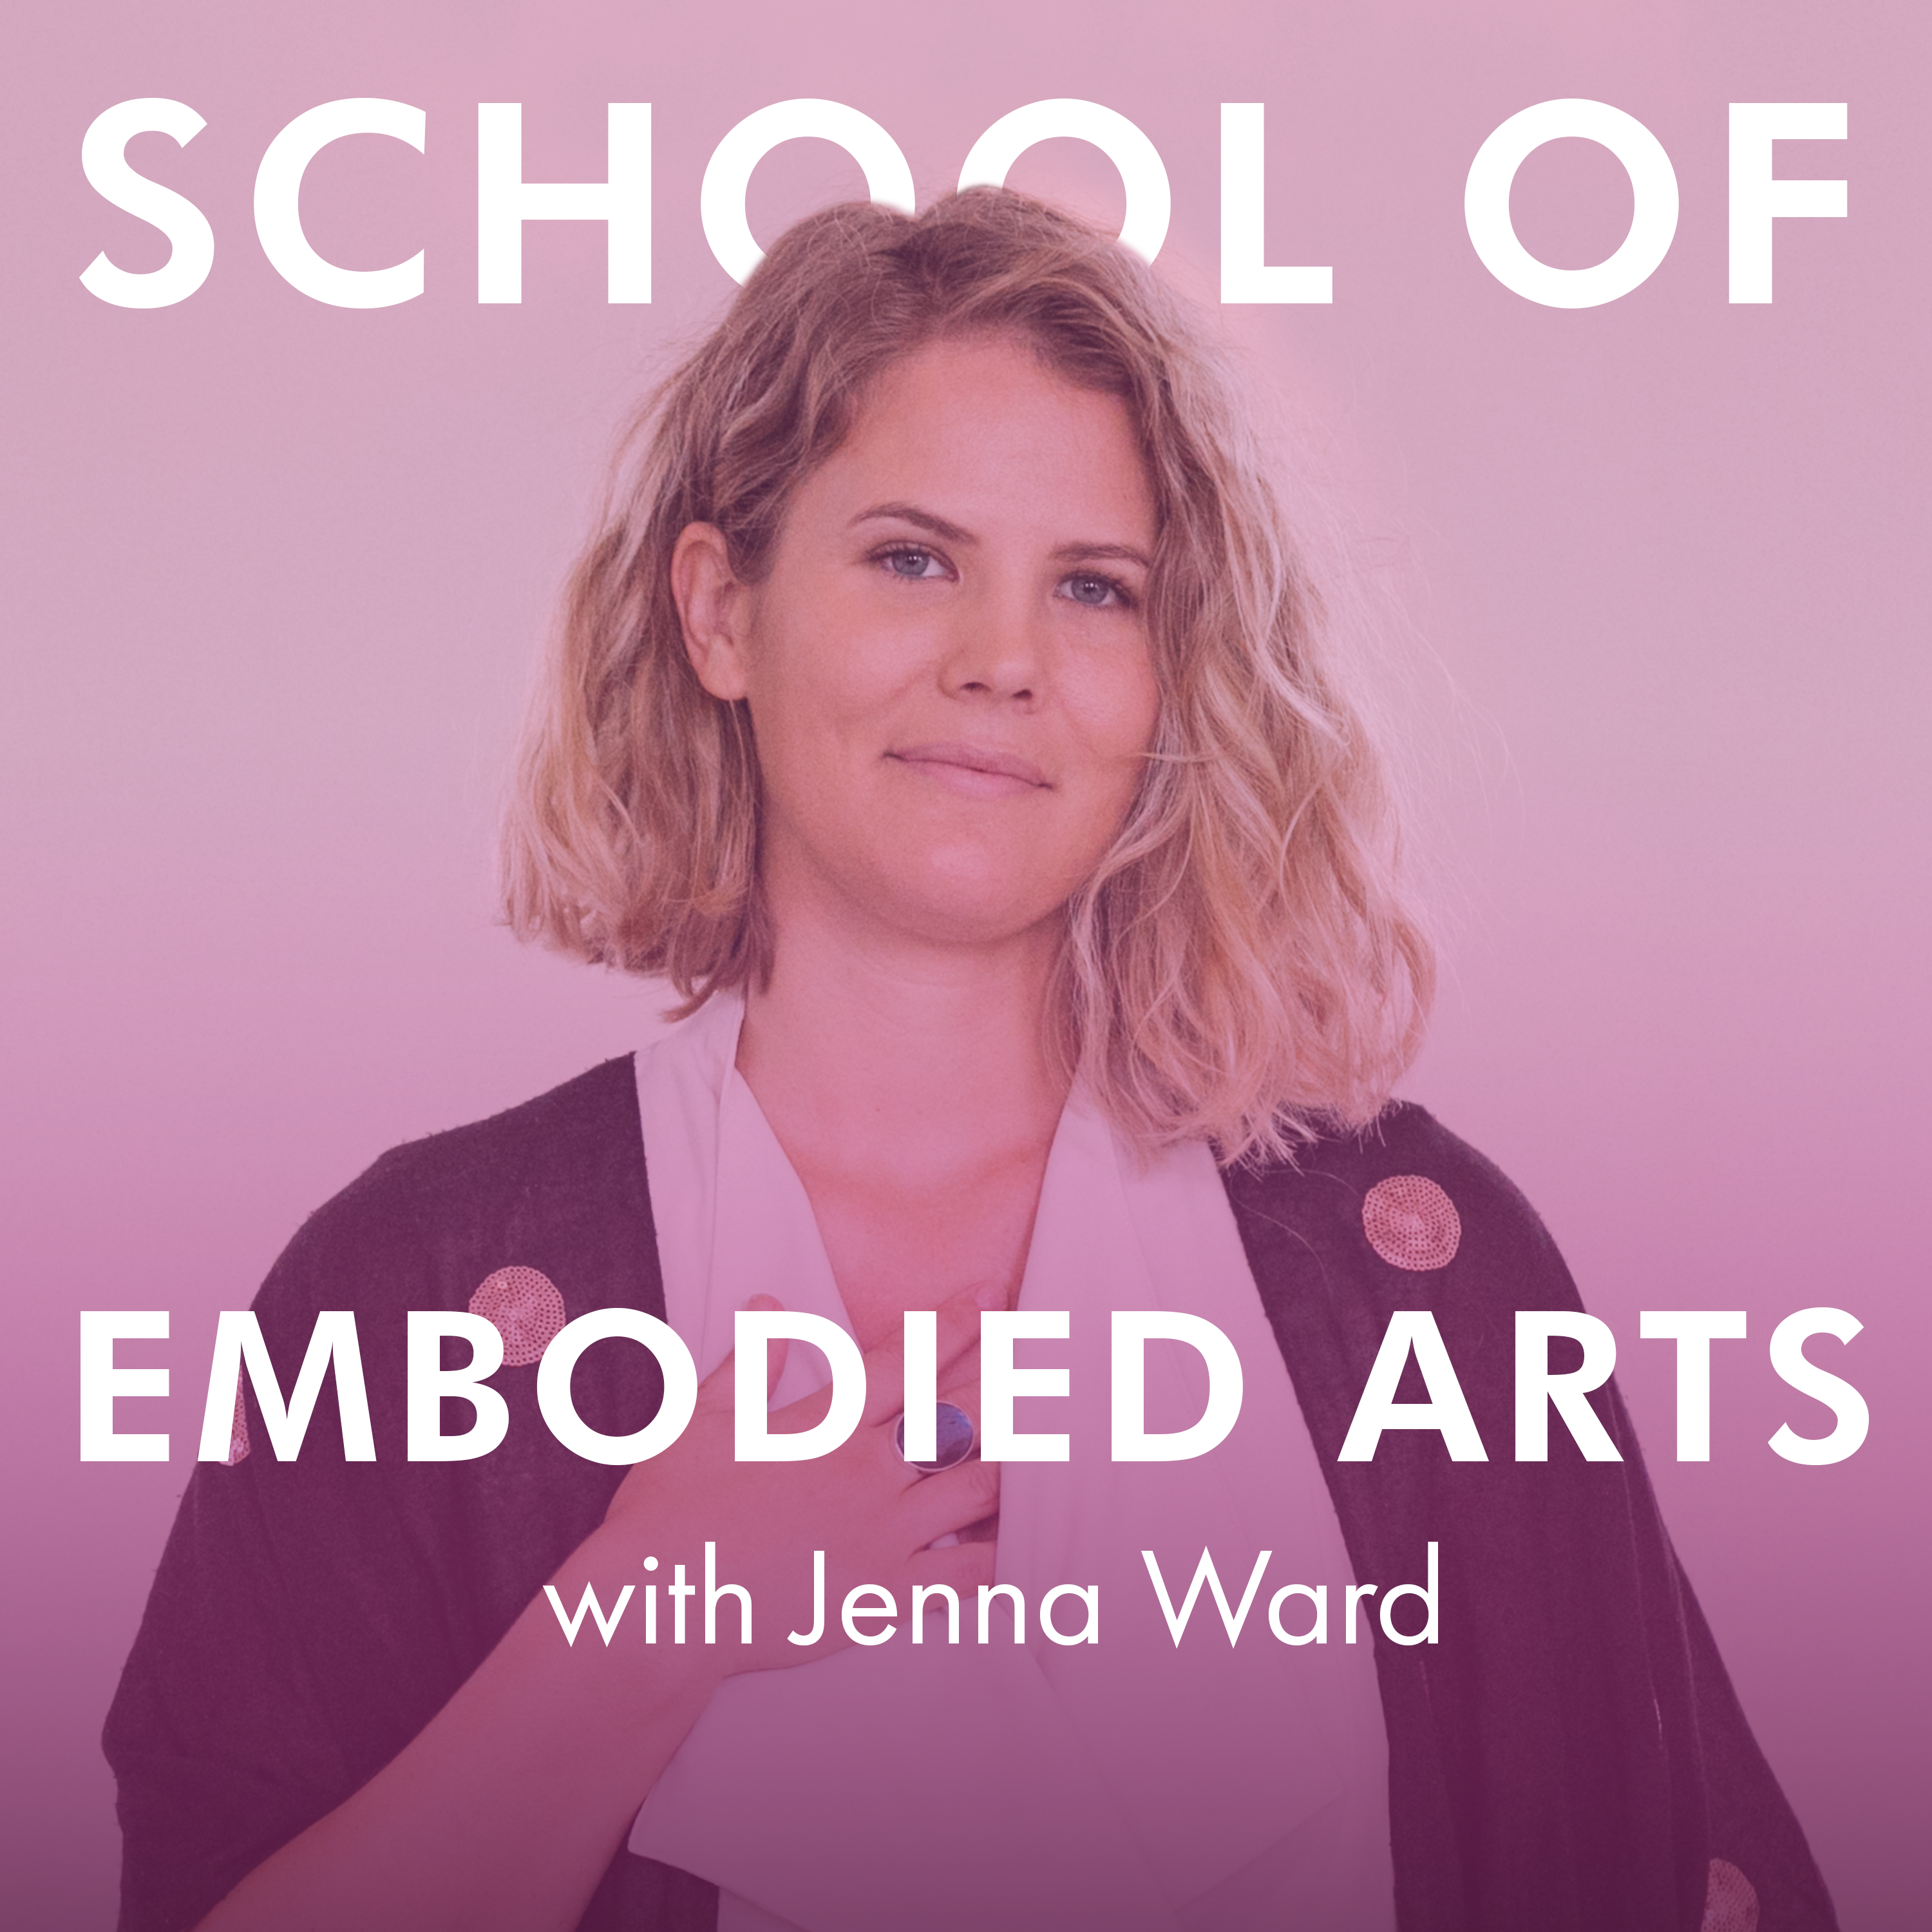 School of Embodied Arts Podcast with Jenna Ward show art